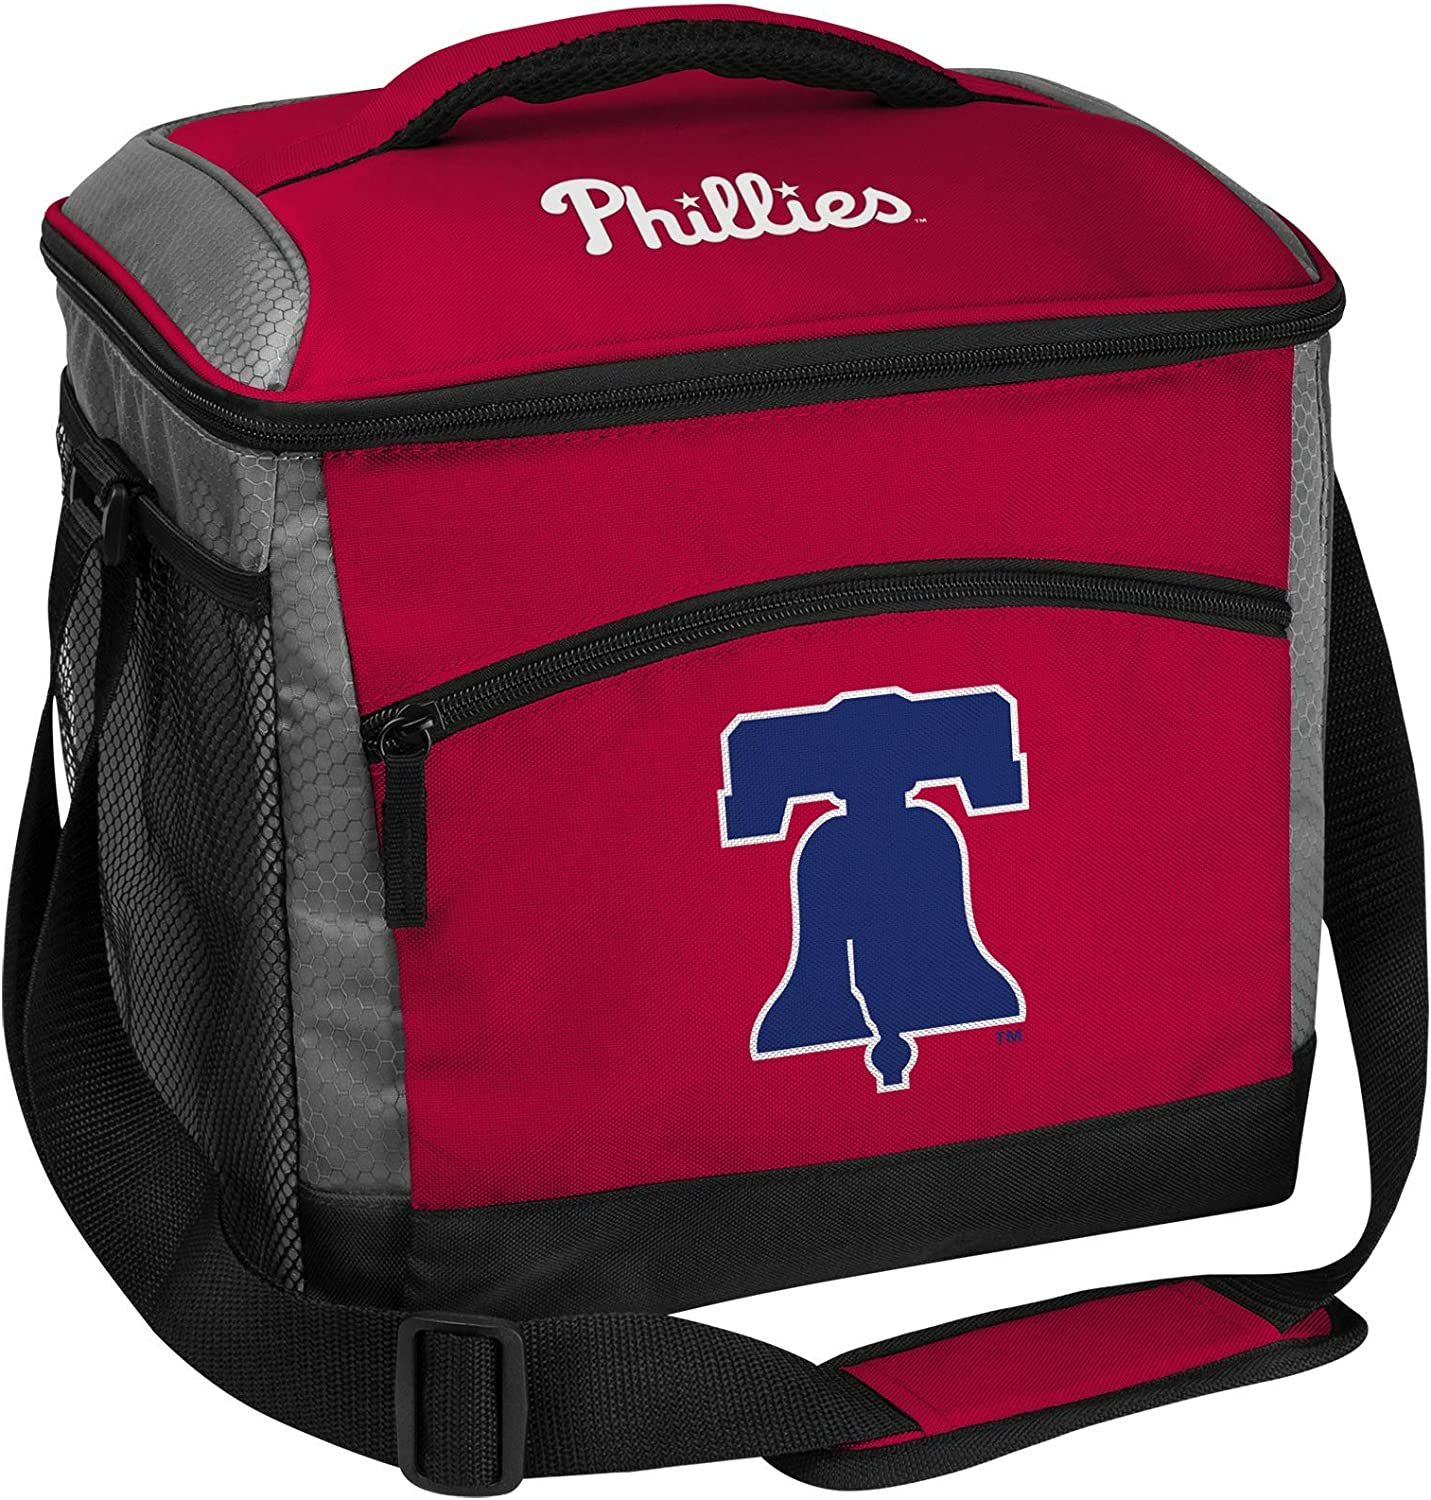 Rawlings MLB Soft Sided Insulated Cooler Bag, 24-Can Capacity (ALL TEAM OPTIONS)